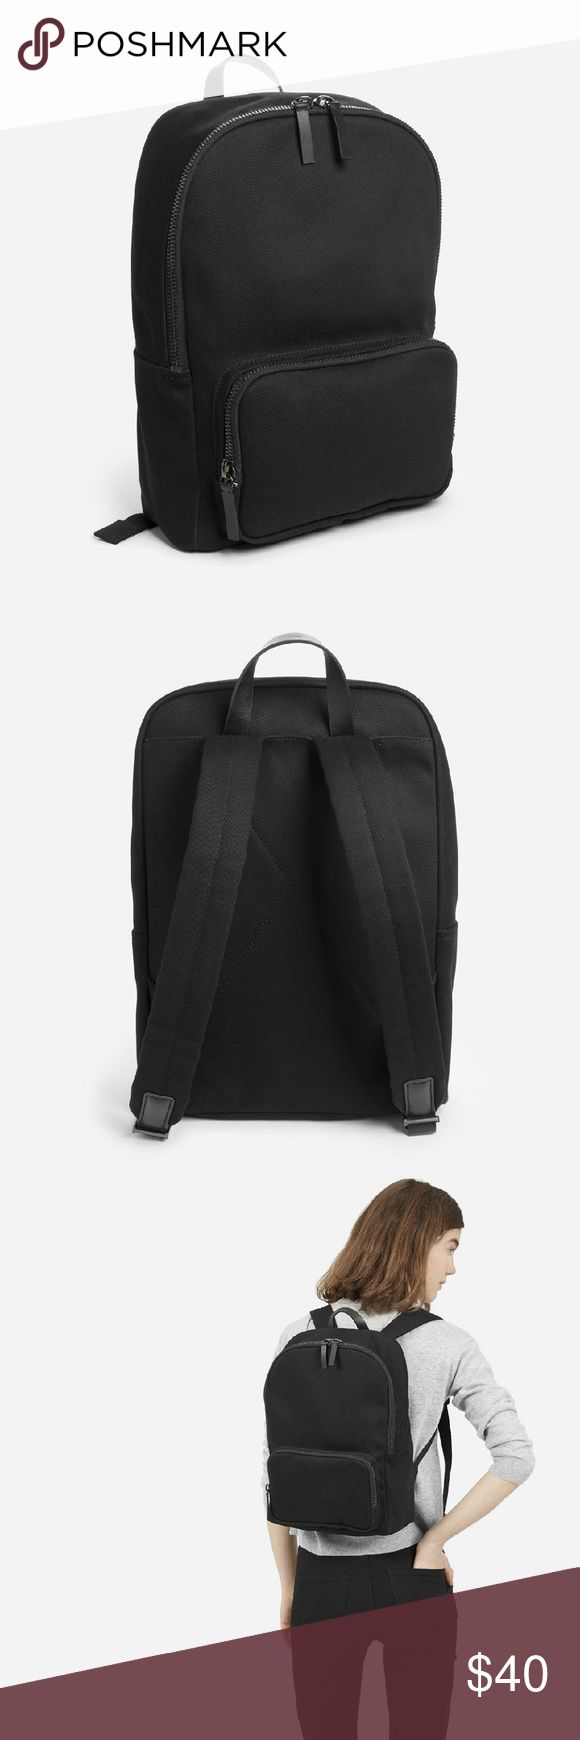 """Everlane modern zip backpack - mini NEW WITH TAGS 11 1/2"""" L x 6"""" W x 15"""" H Comfortably fits 13"""" Macbook Water-resistant cotton twill exterior, cotton/polyester lining, leather detailing Spot clean only  Great little backpack! I have 2 of these and use it everyday. The size may surprise you, it fits a lot more than expected! Everlane Bags Backpacks"""